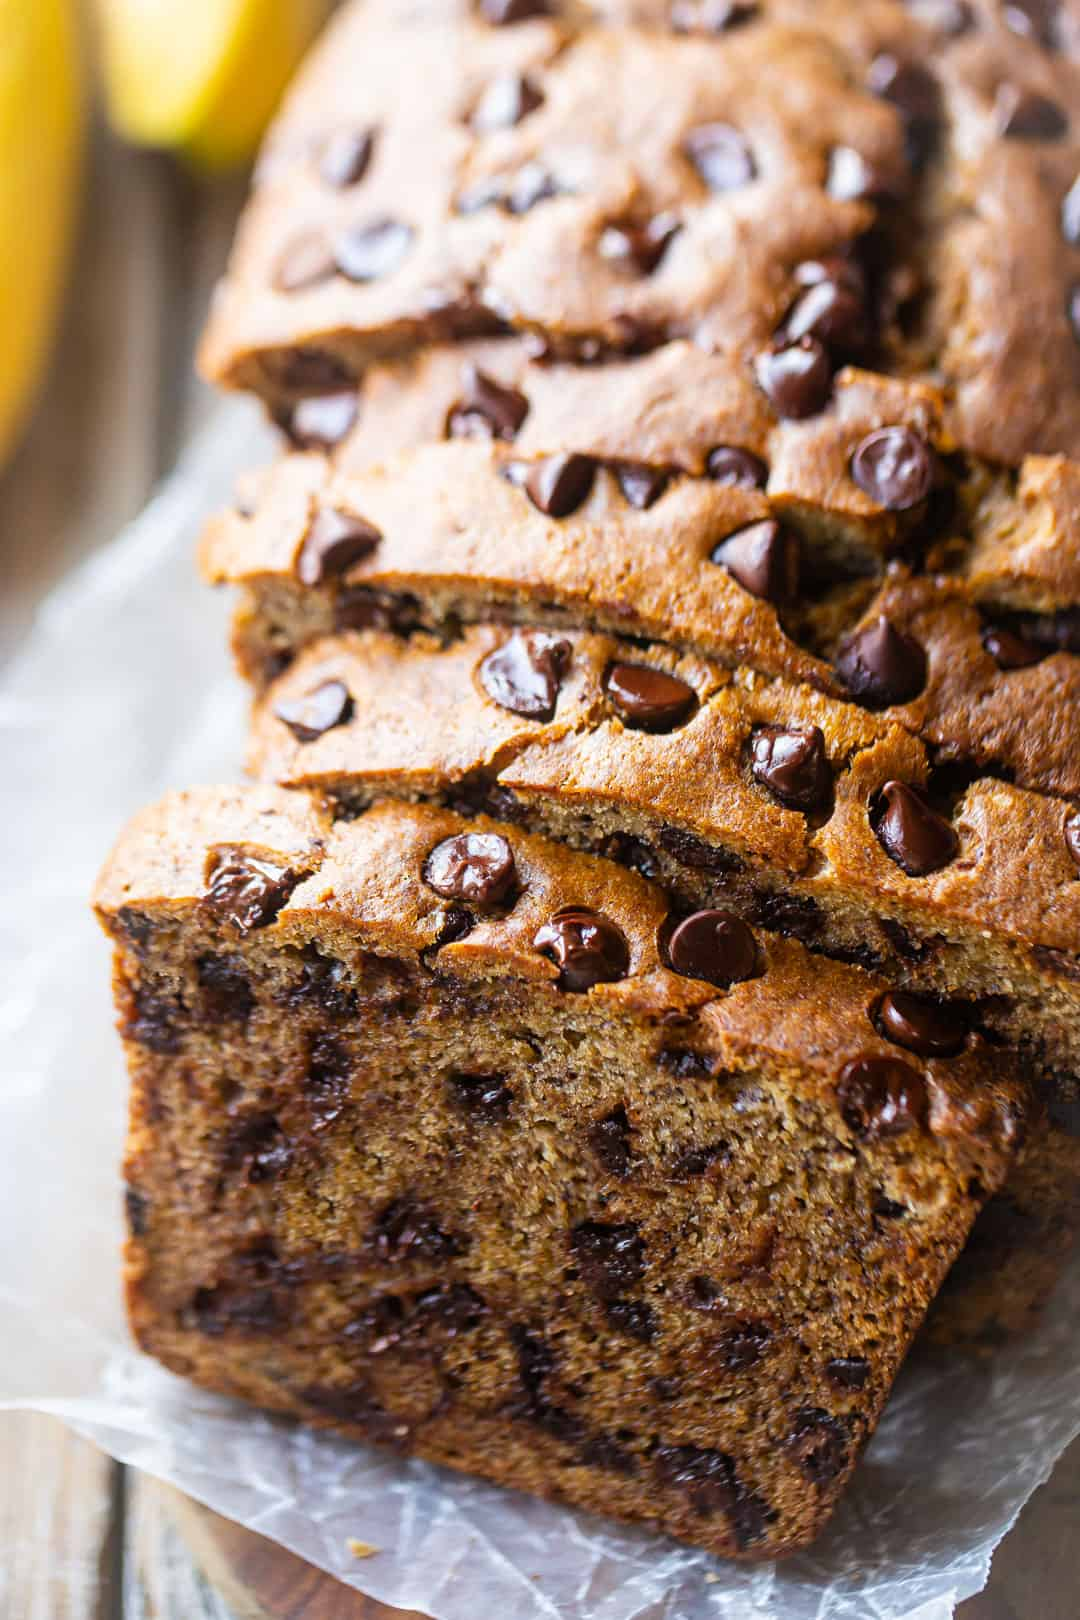 Banana bread recipe with chocolate chips, baked & sliced on a wood table with fresh bananas in the background.